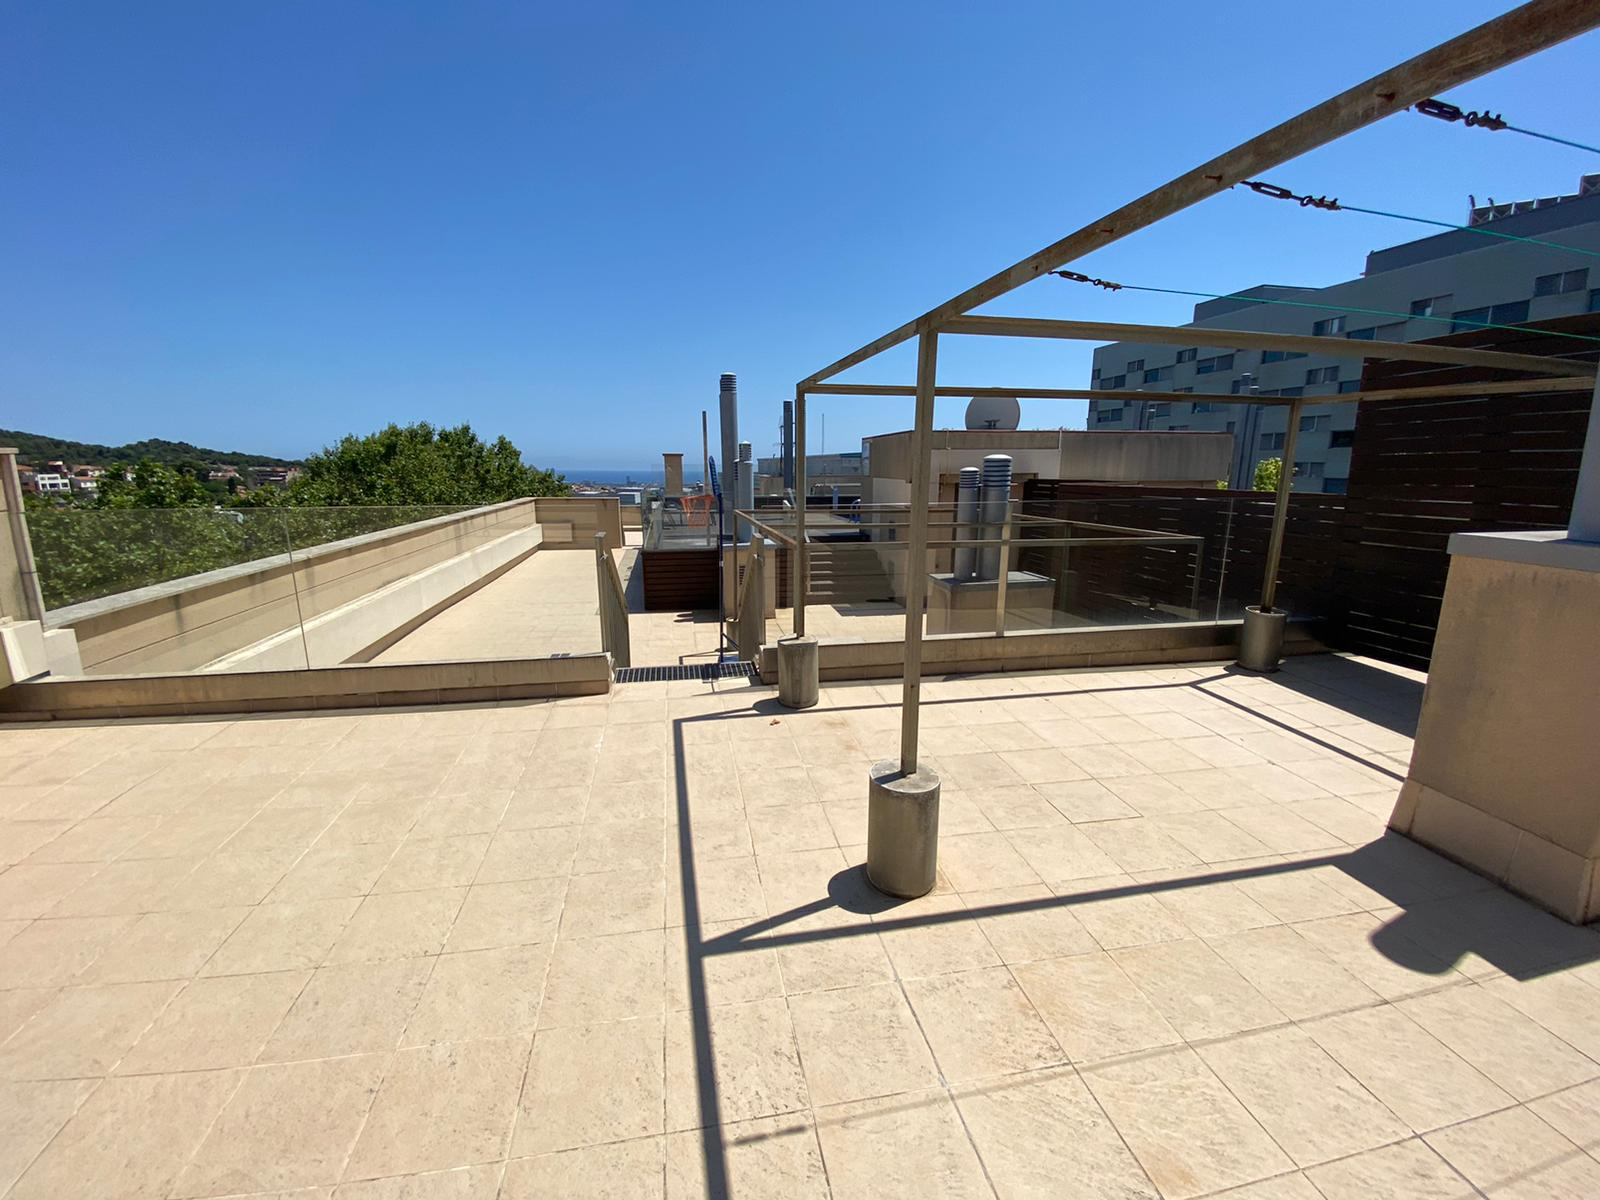 246682 Flat for sale in Gràcia, Vallcarca and Els Penitents 22